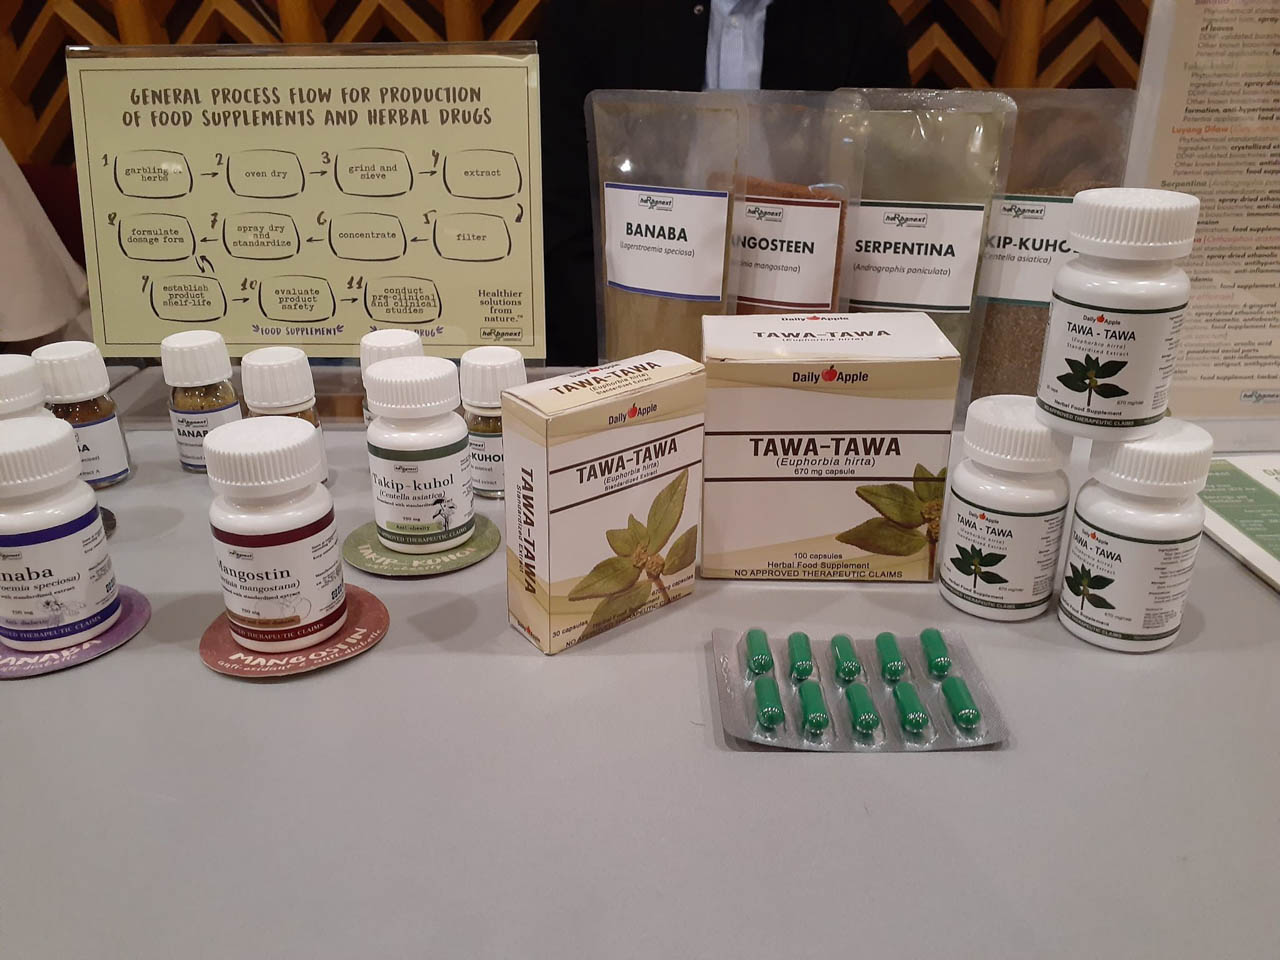 PLANT-DERIVED. Some of the plant-derived medicines and supplements. Photo courtesy of DOST-STII